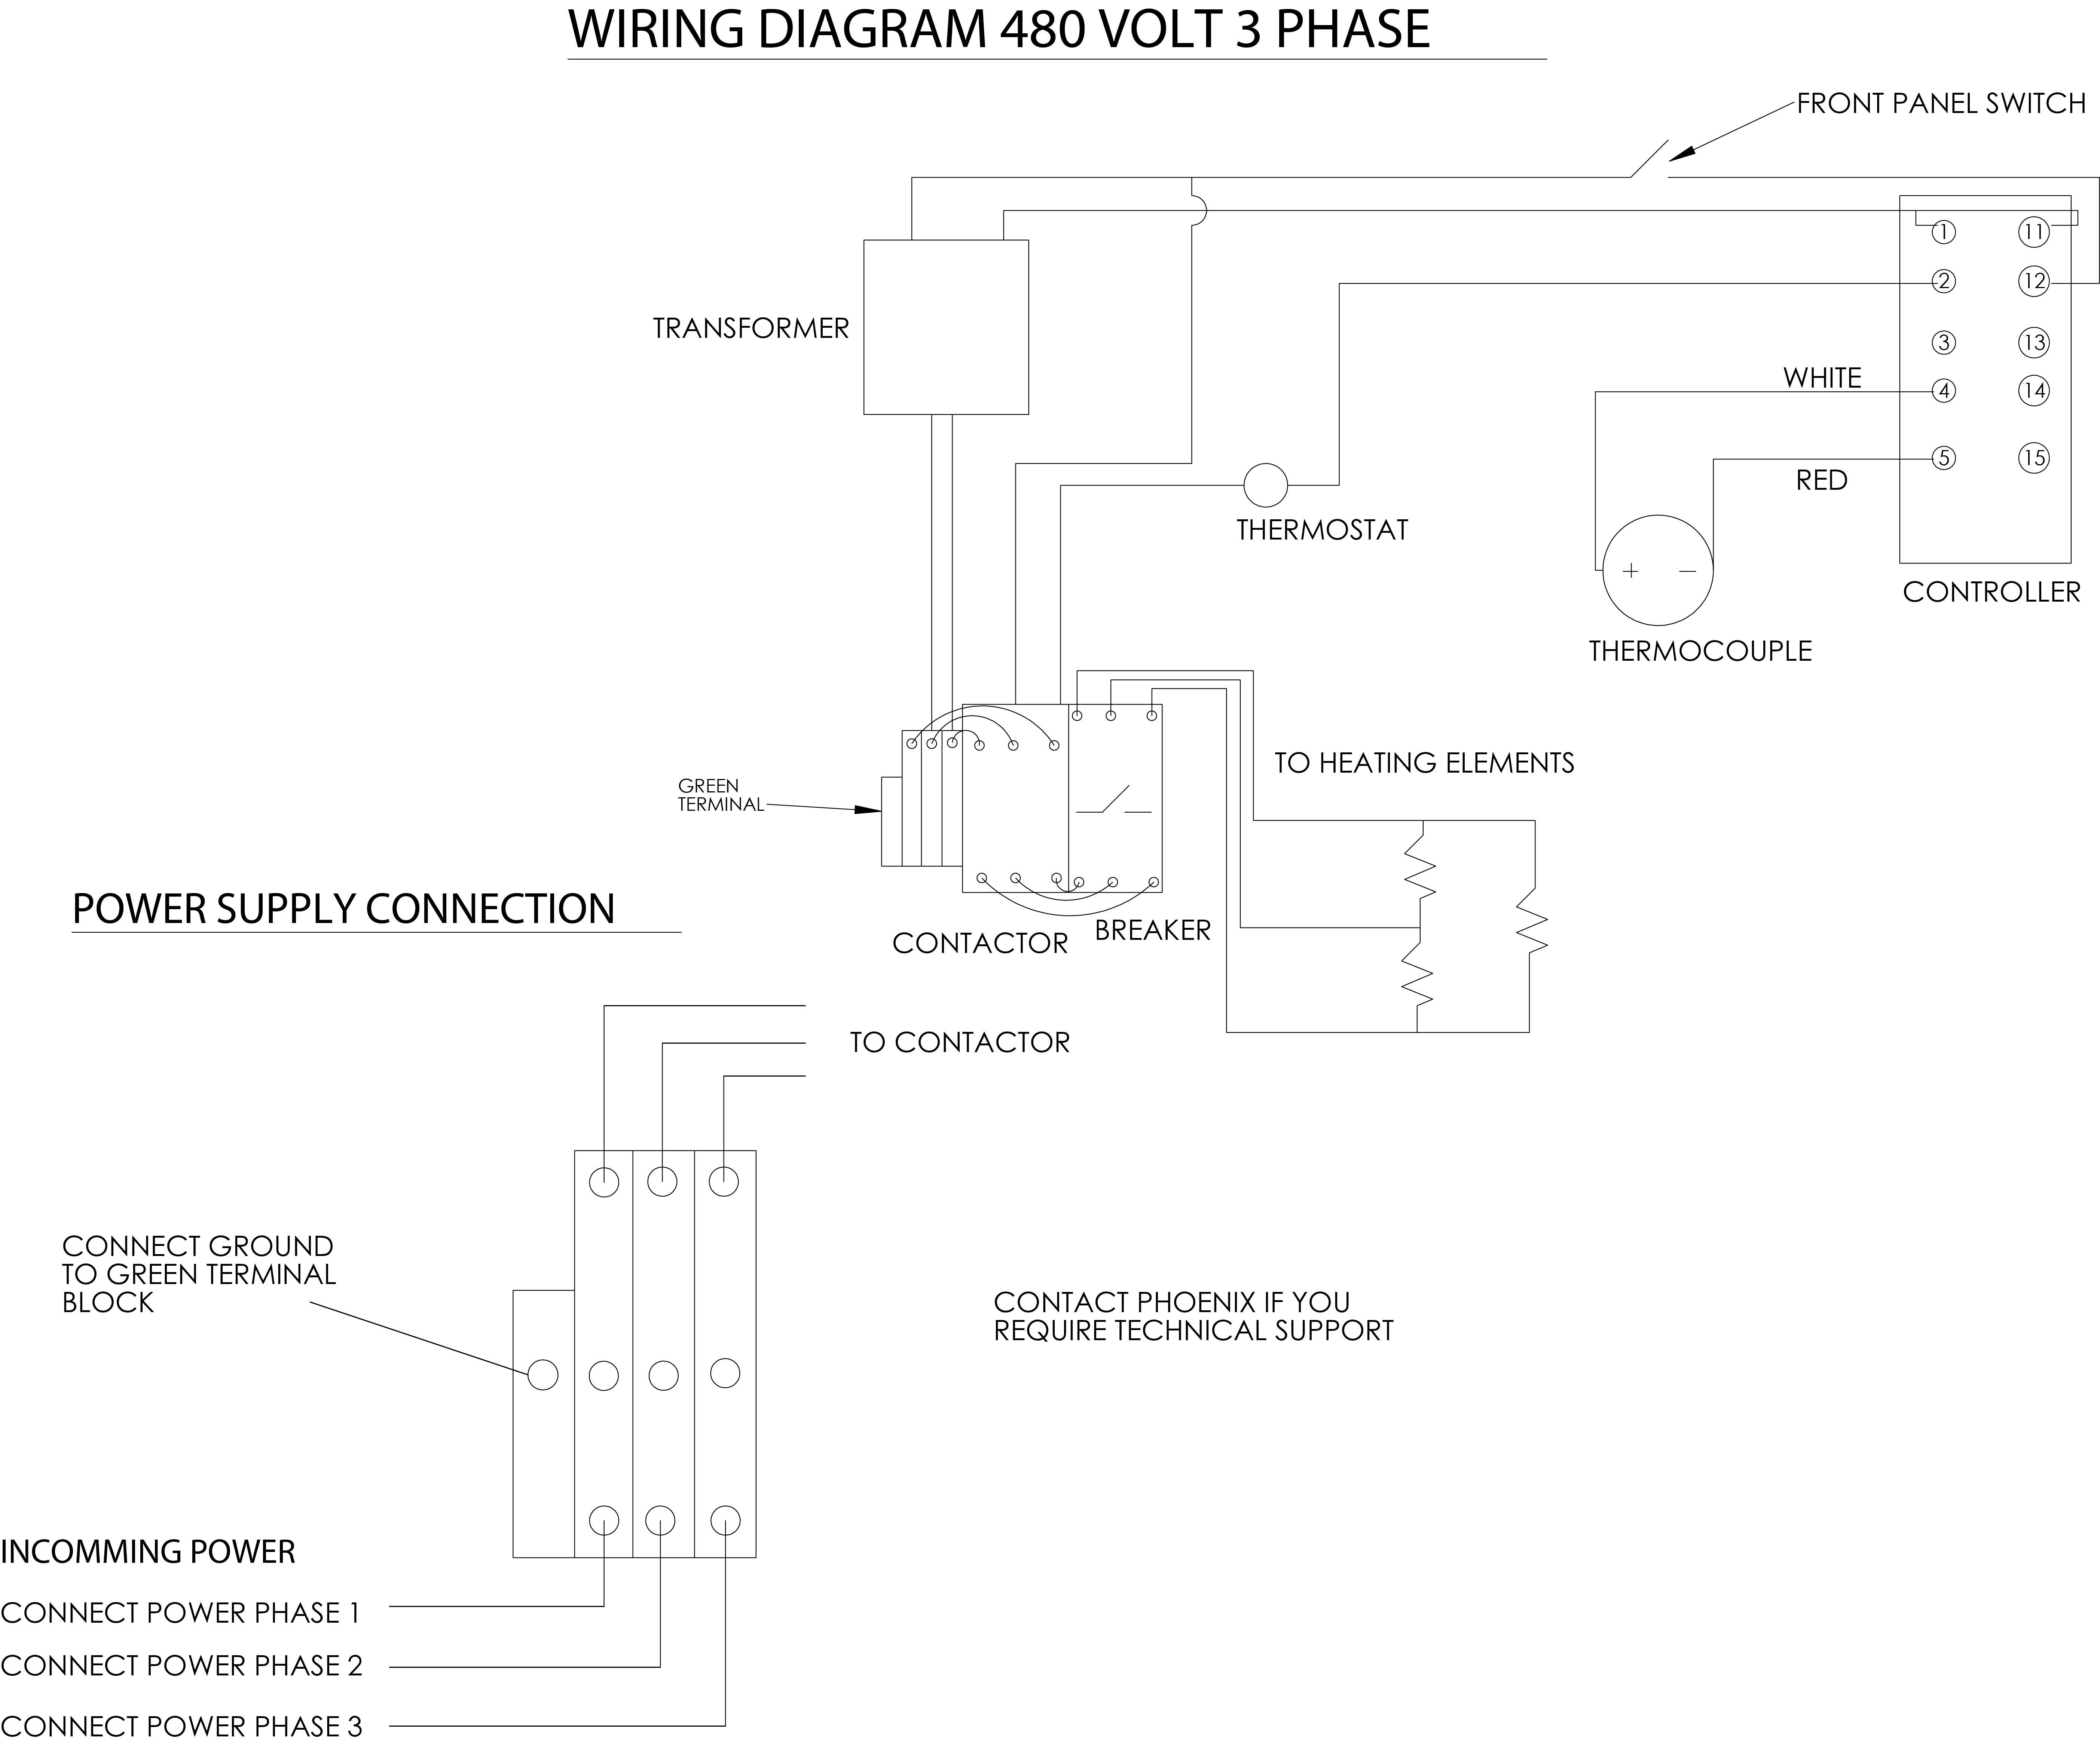 Contactor Wiring Diagram Single Phase from i.pinimg.com